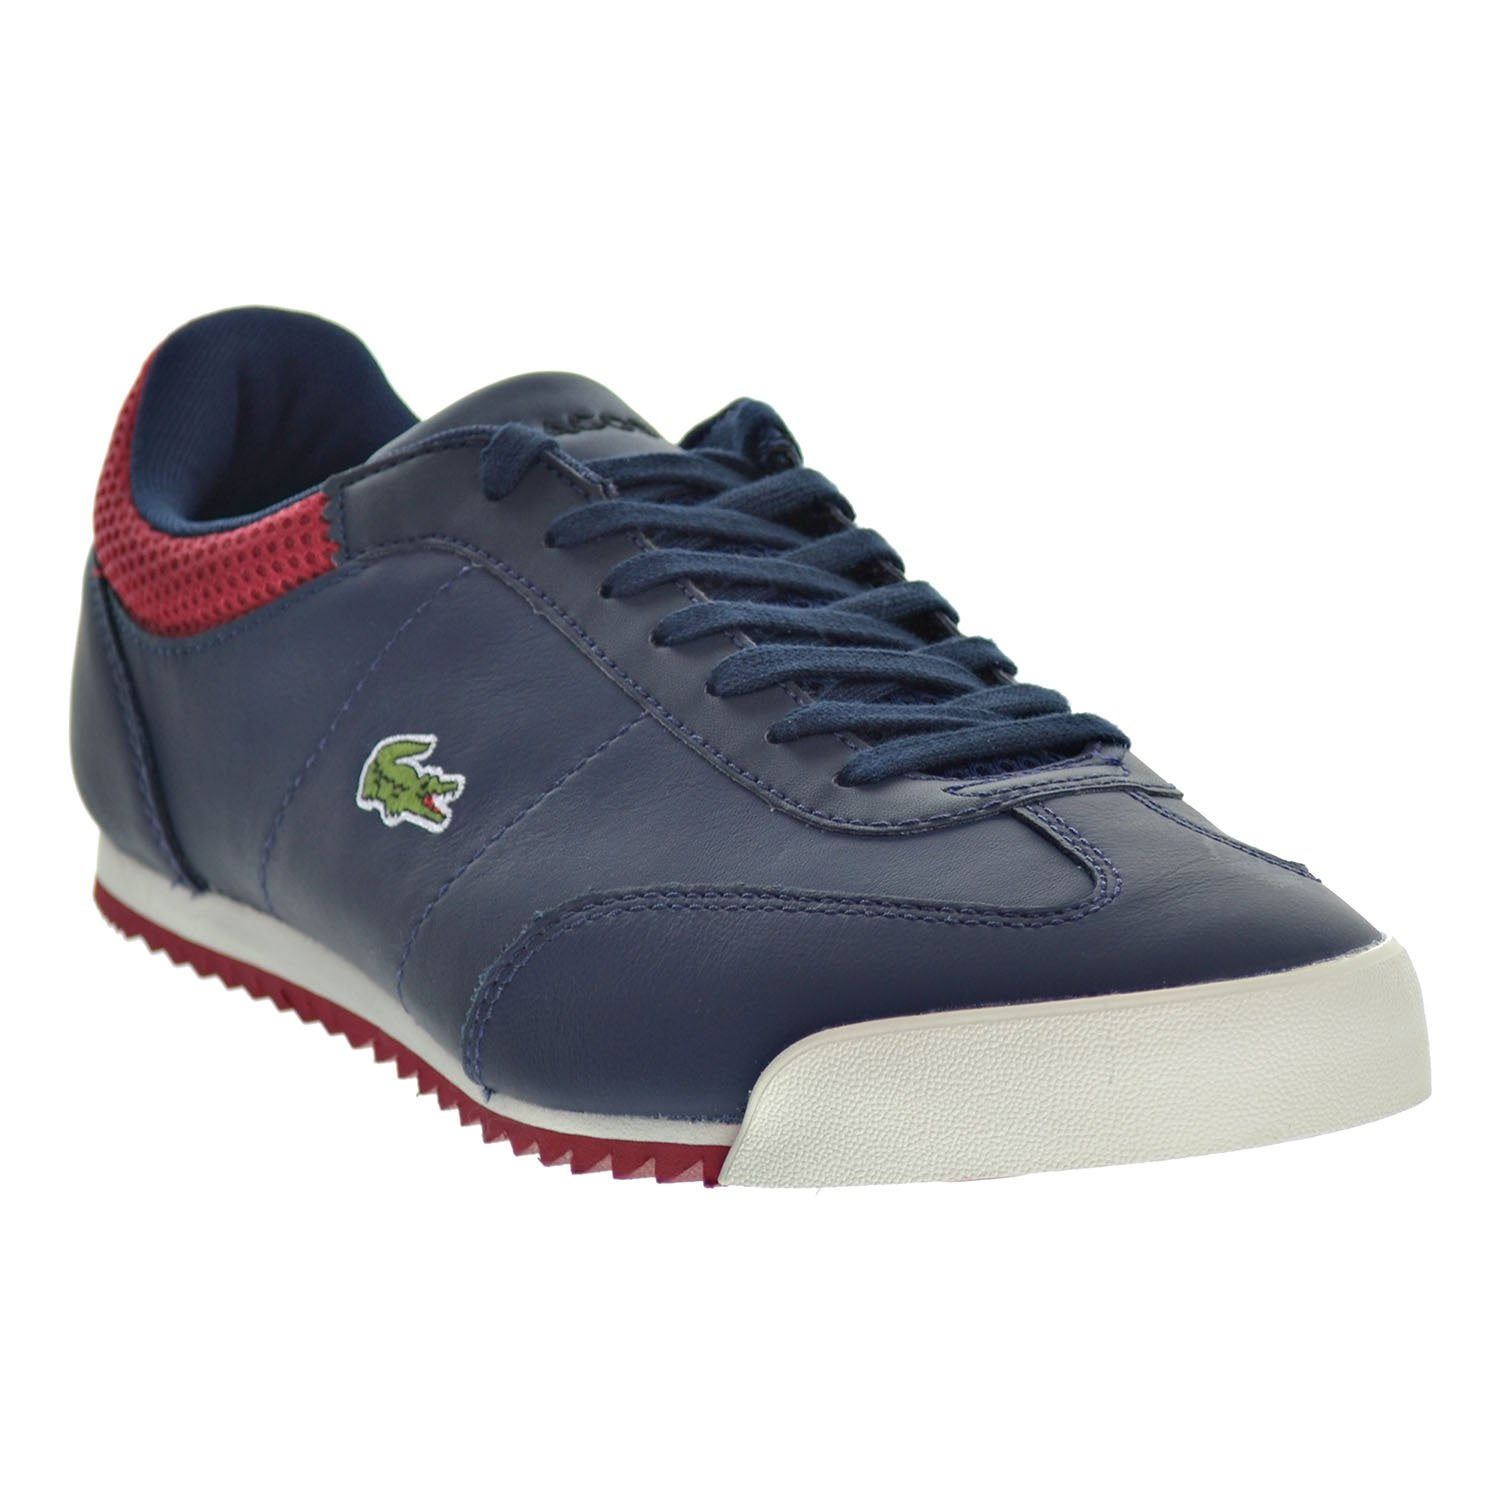 Lacoste Romeau 316 1 SPM Mens Shoes Navy//Red//White 7-32spm0036-003